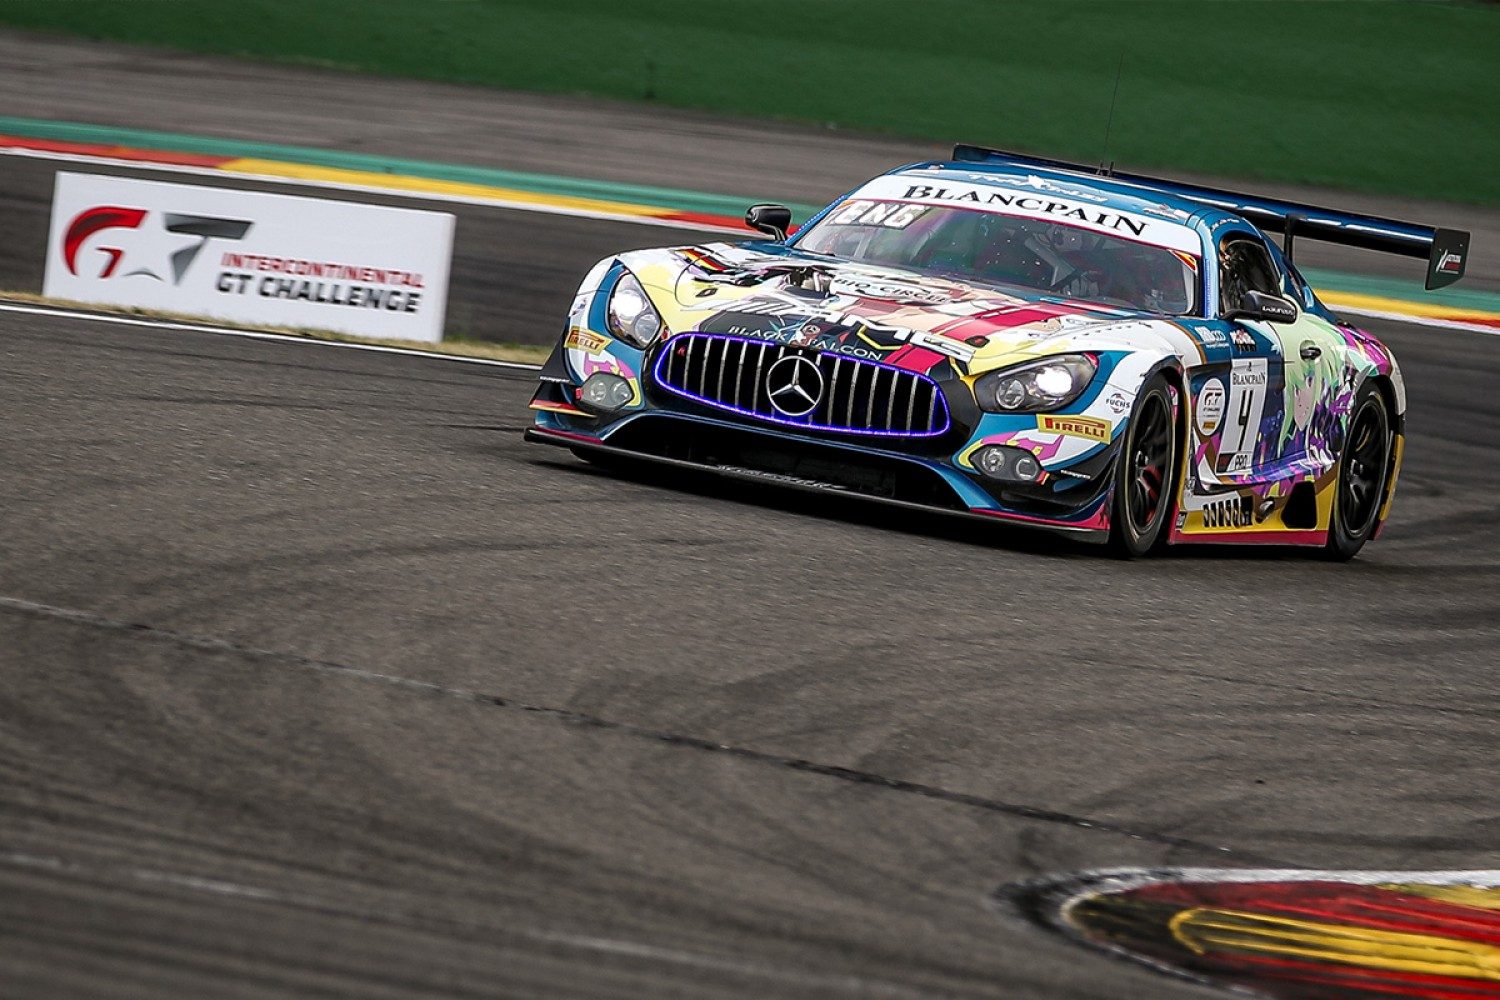 Engel edges Vanthoor in Super Pole thriller at Spa